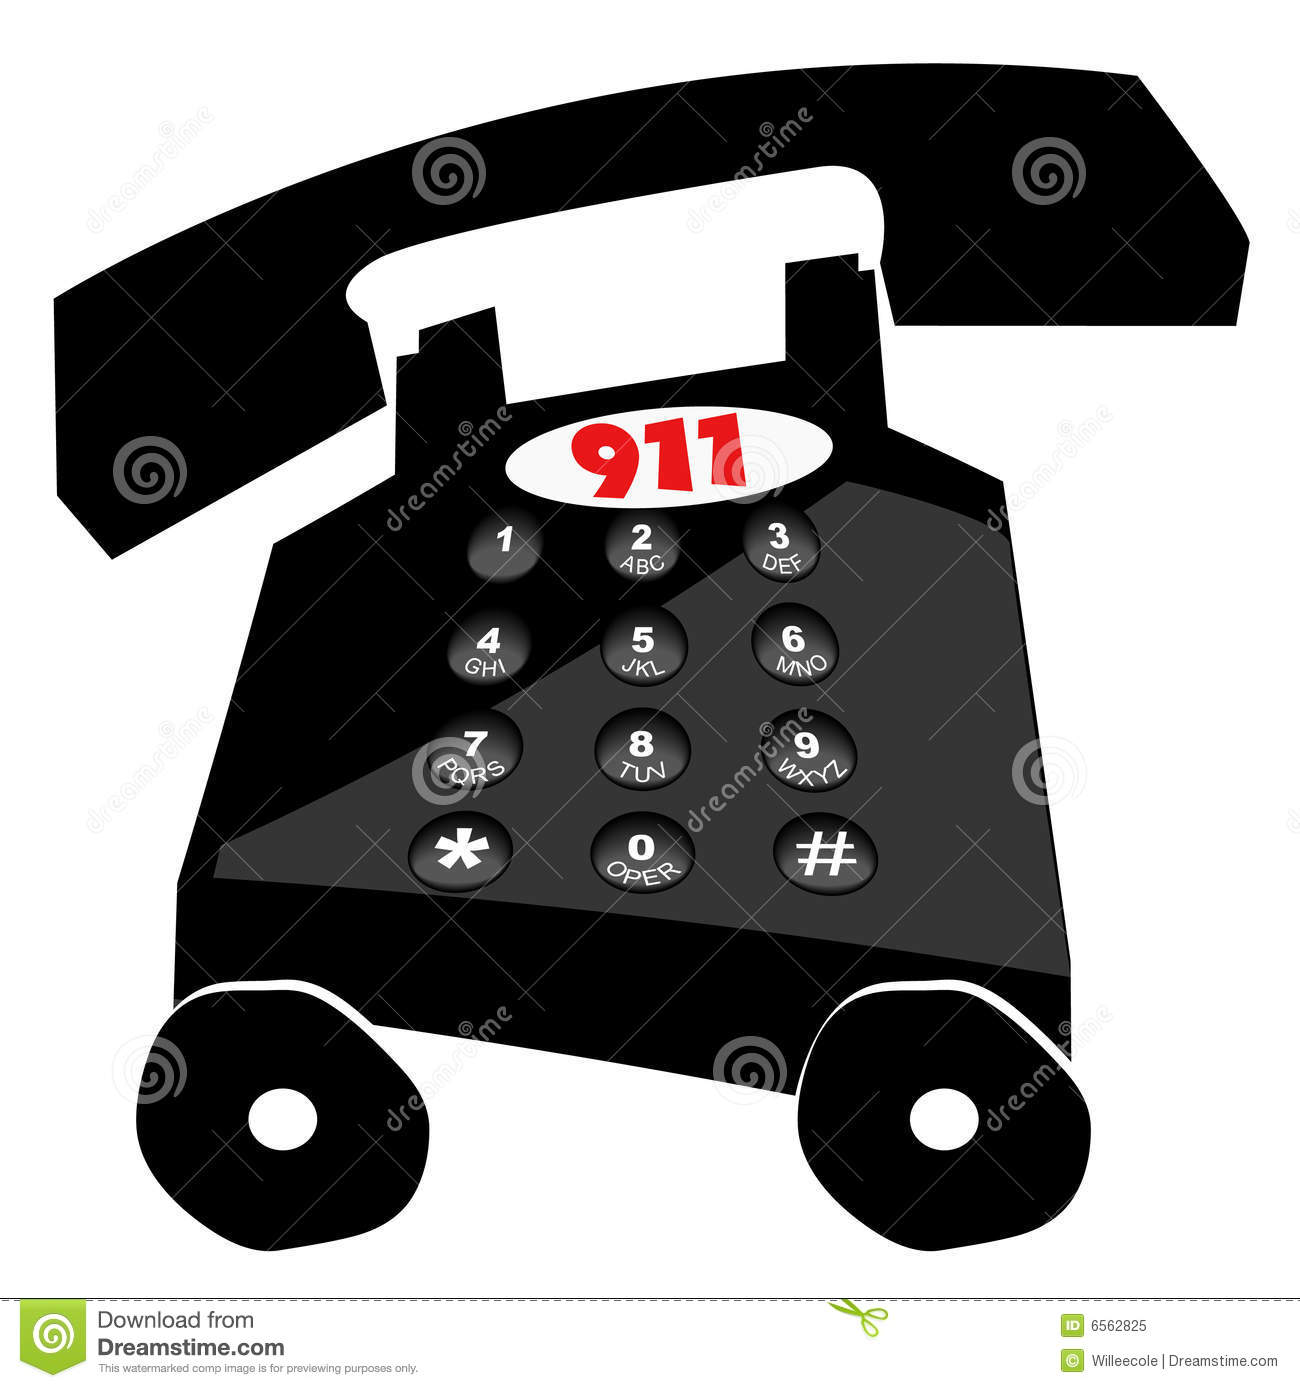 Emergency 911 Stock Vector Illustration Of Keys